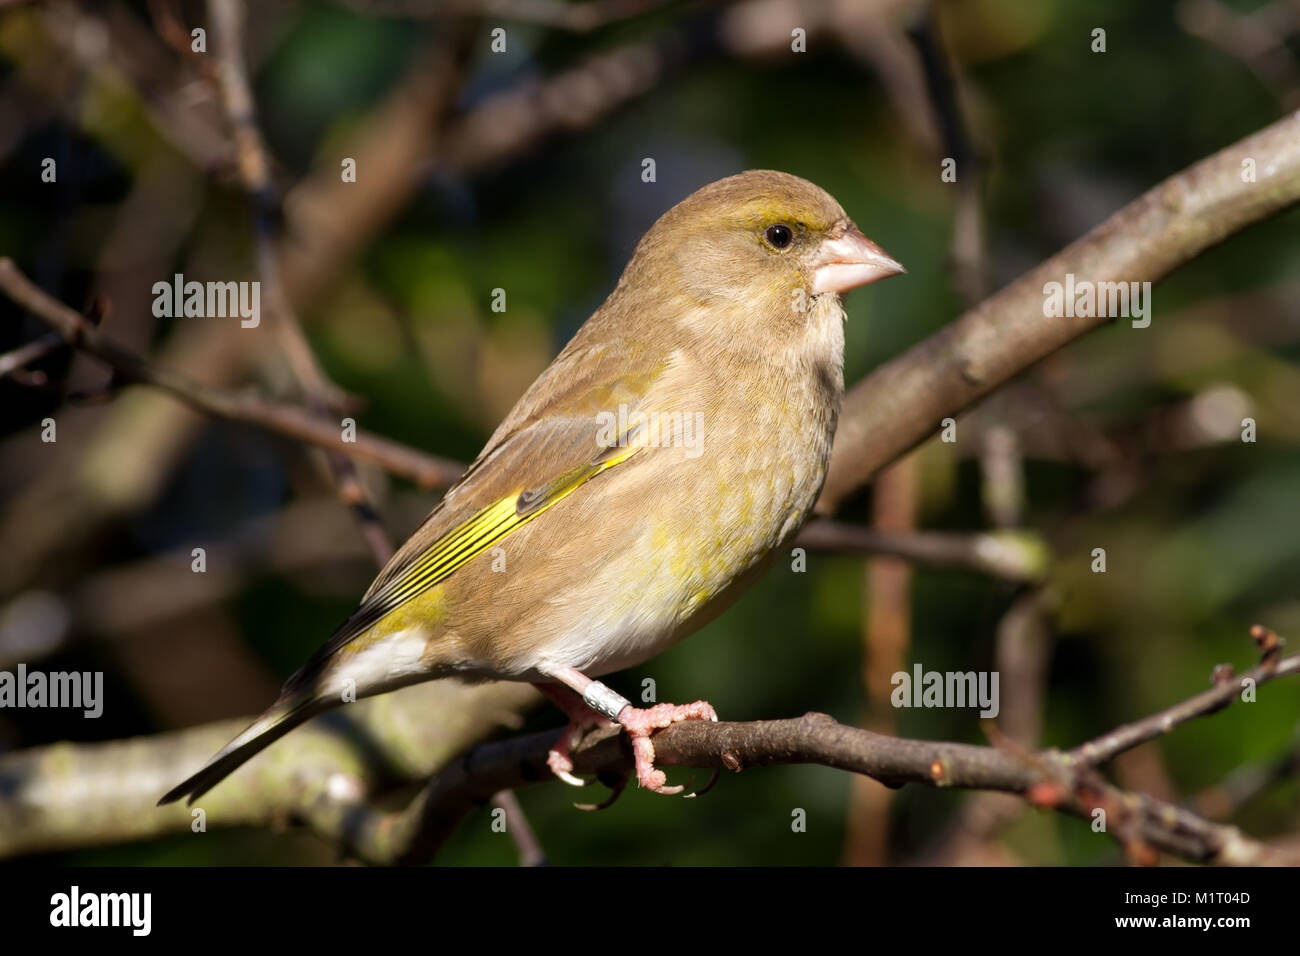 Adult male Greenfinch, Carduelis chloris, perched in tree branch, UK - Stock Image